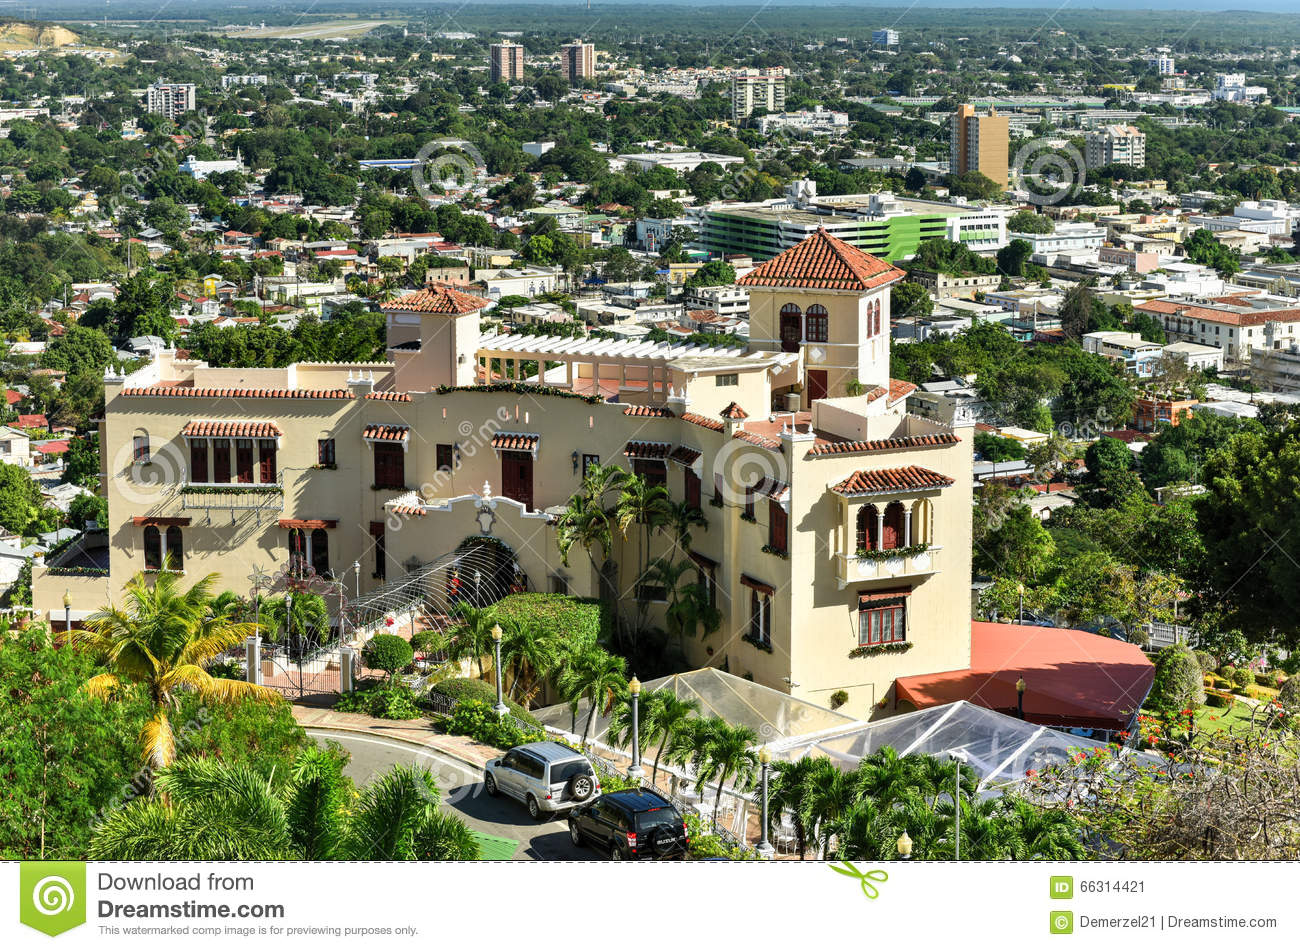 castillo serralles mansion ponce puerto rico castle located city overlooking downtown area 66314421